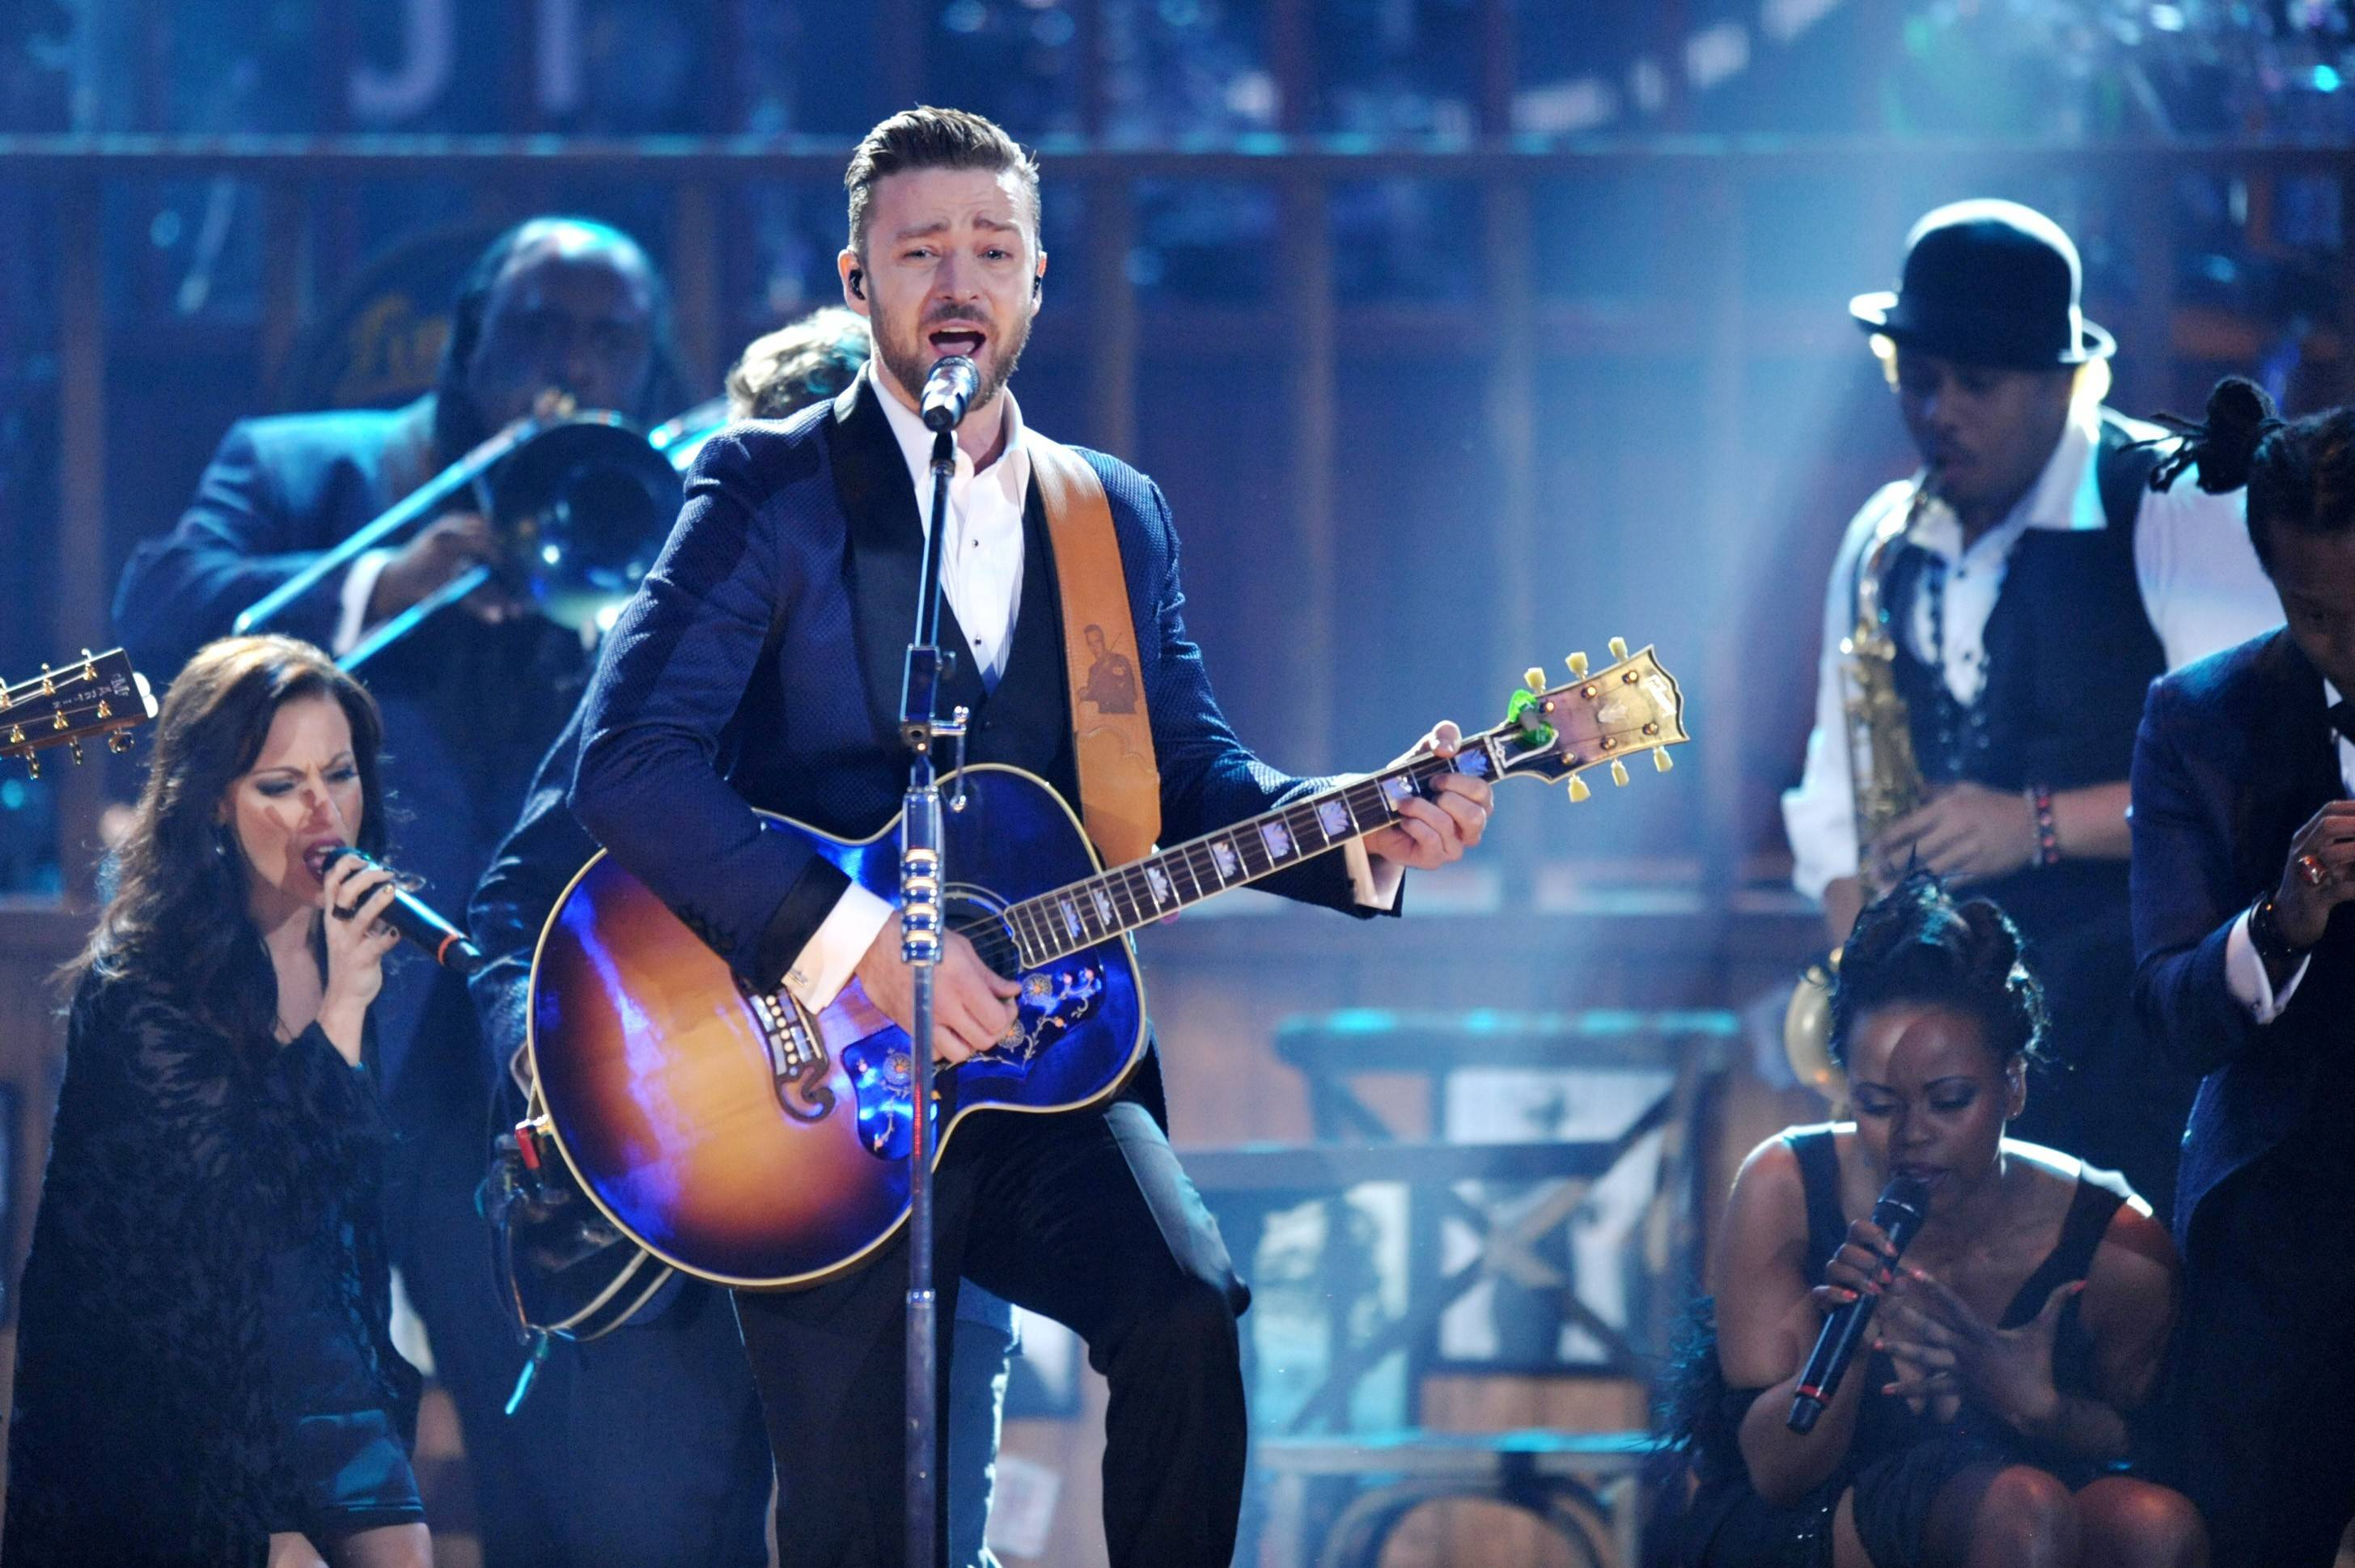 AP File PhotoJustin Timberlake brings The 20/20 Experience World Tour to the United Center in Chicago on Sunday and Monday, Feb. 16 and 17.